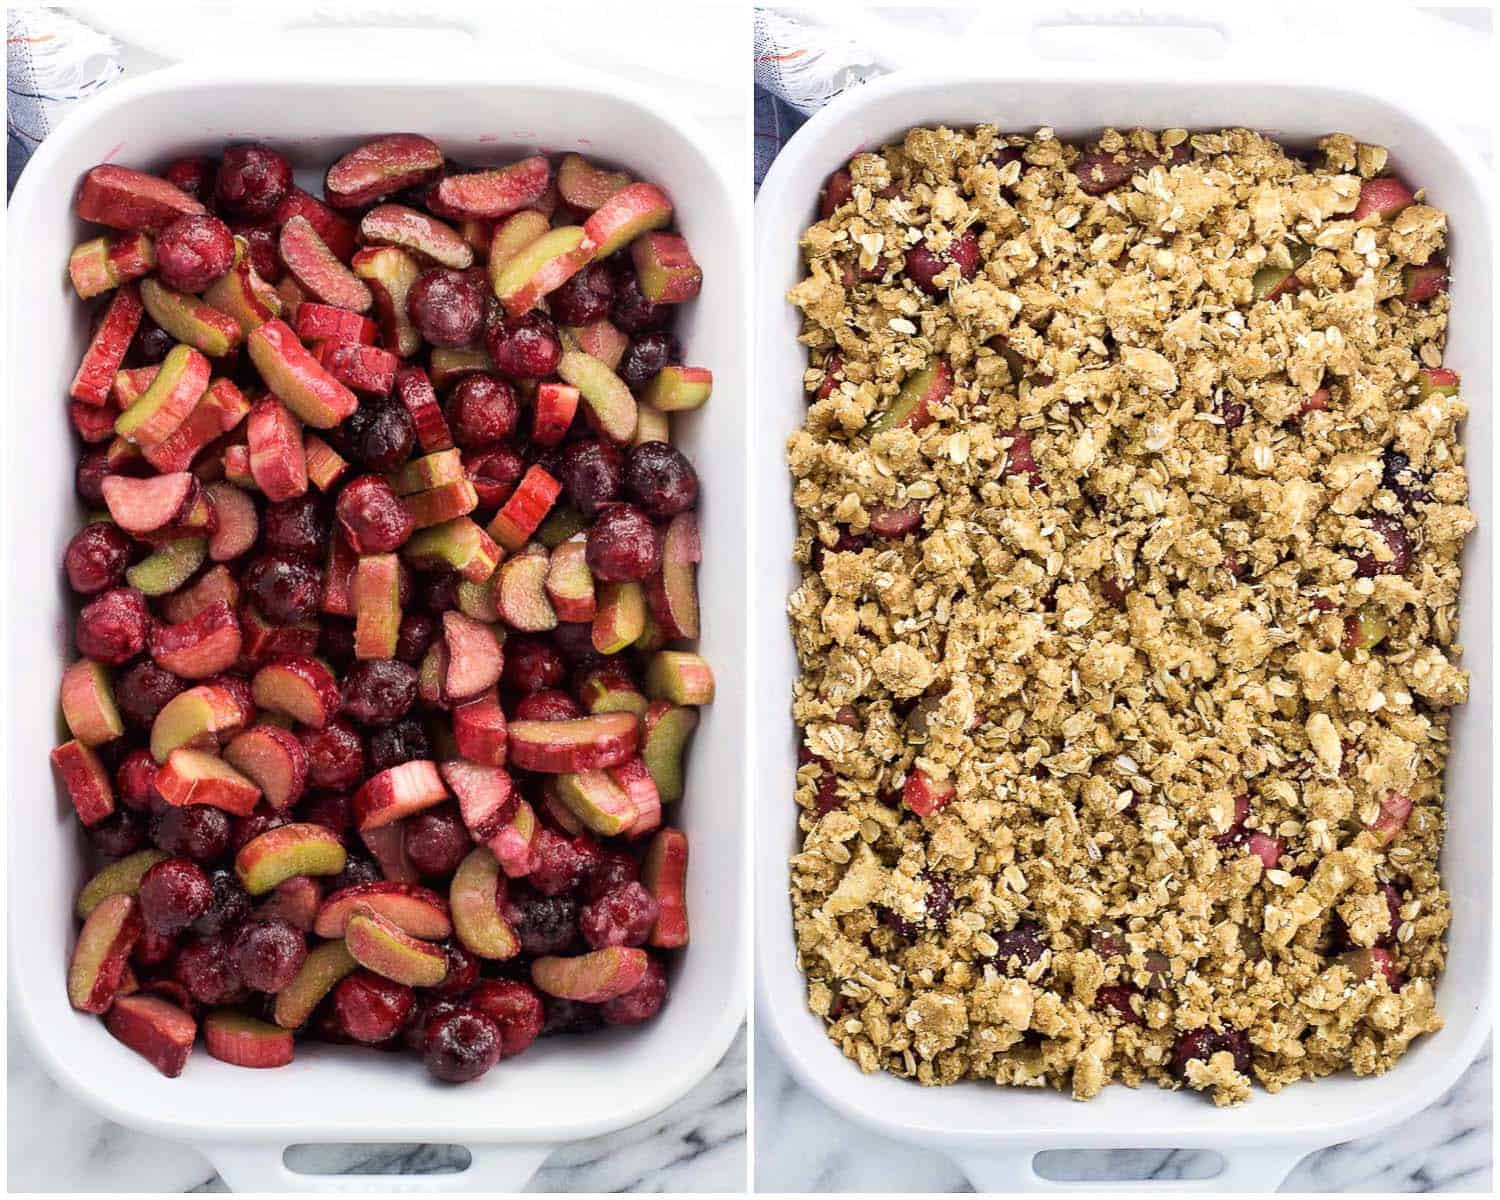 A side-by-side picture of cherries and rhubarb in a baking dish and then the fruit covered with oatmeal crisp topping pre-bake.